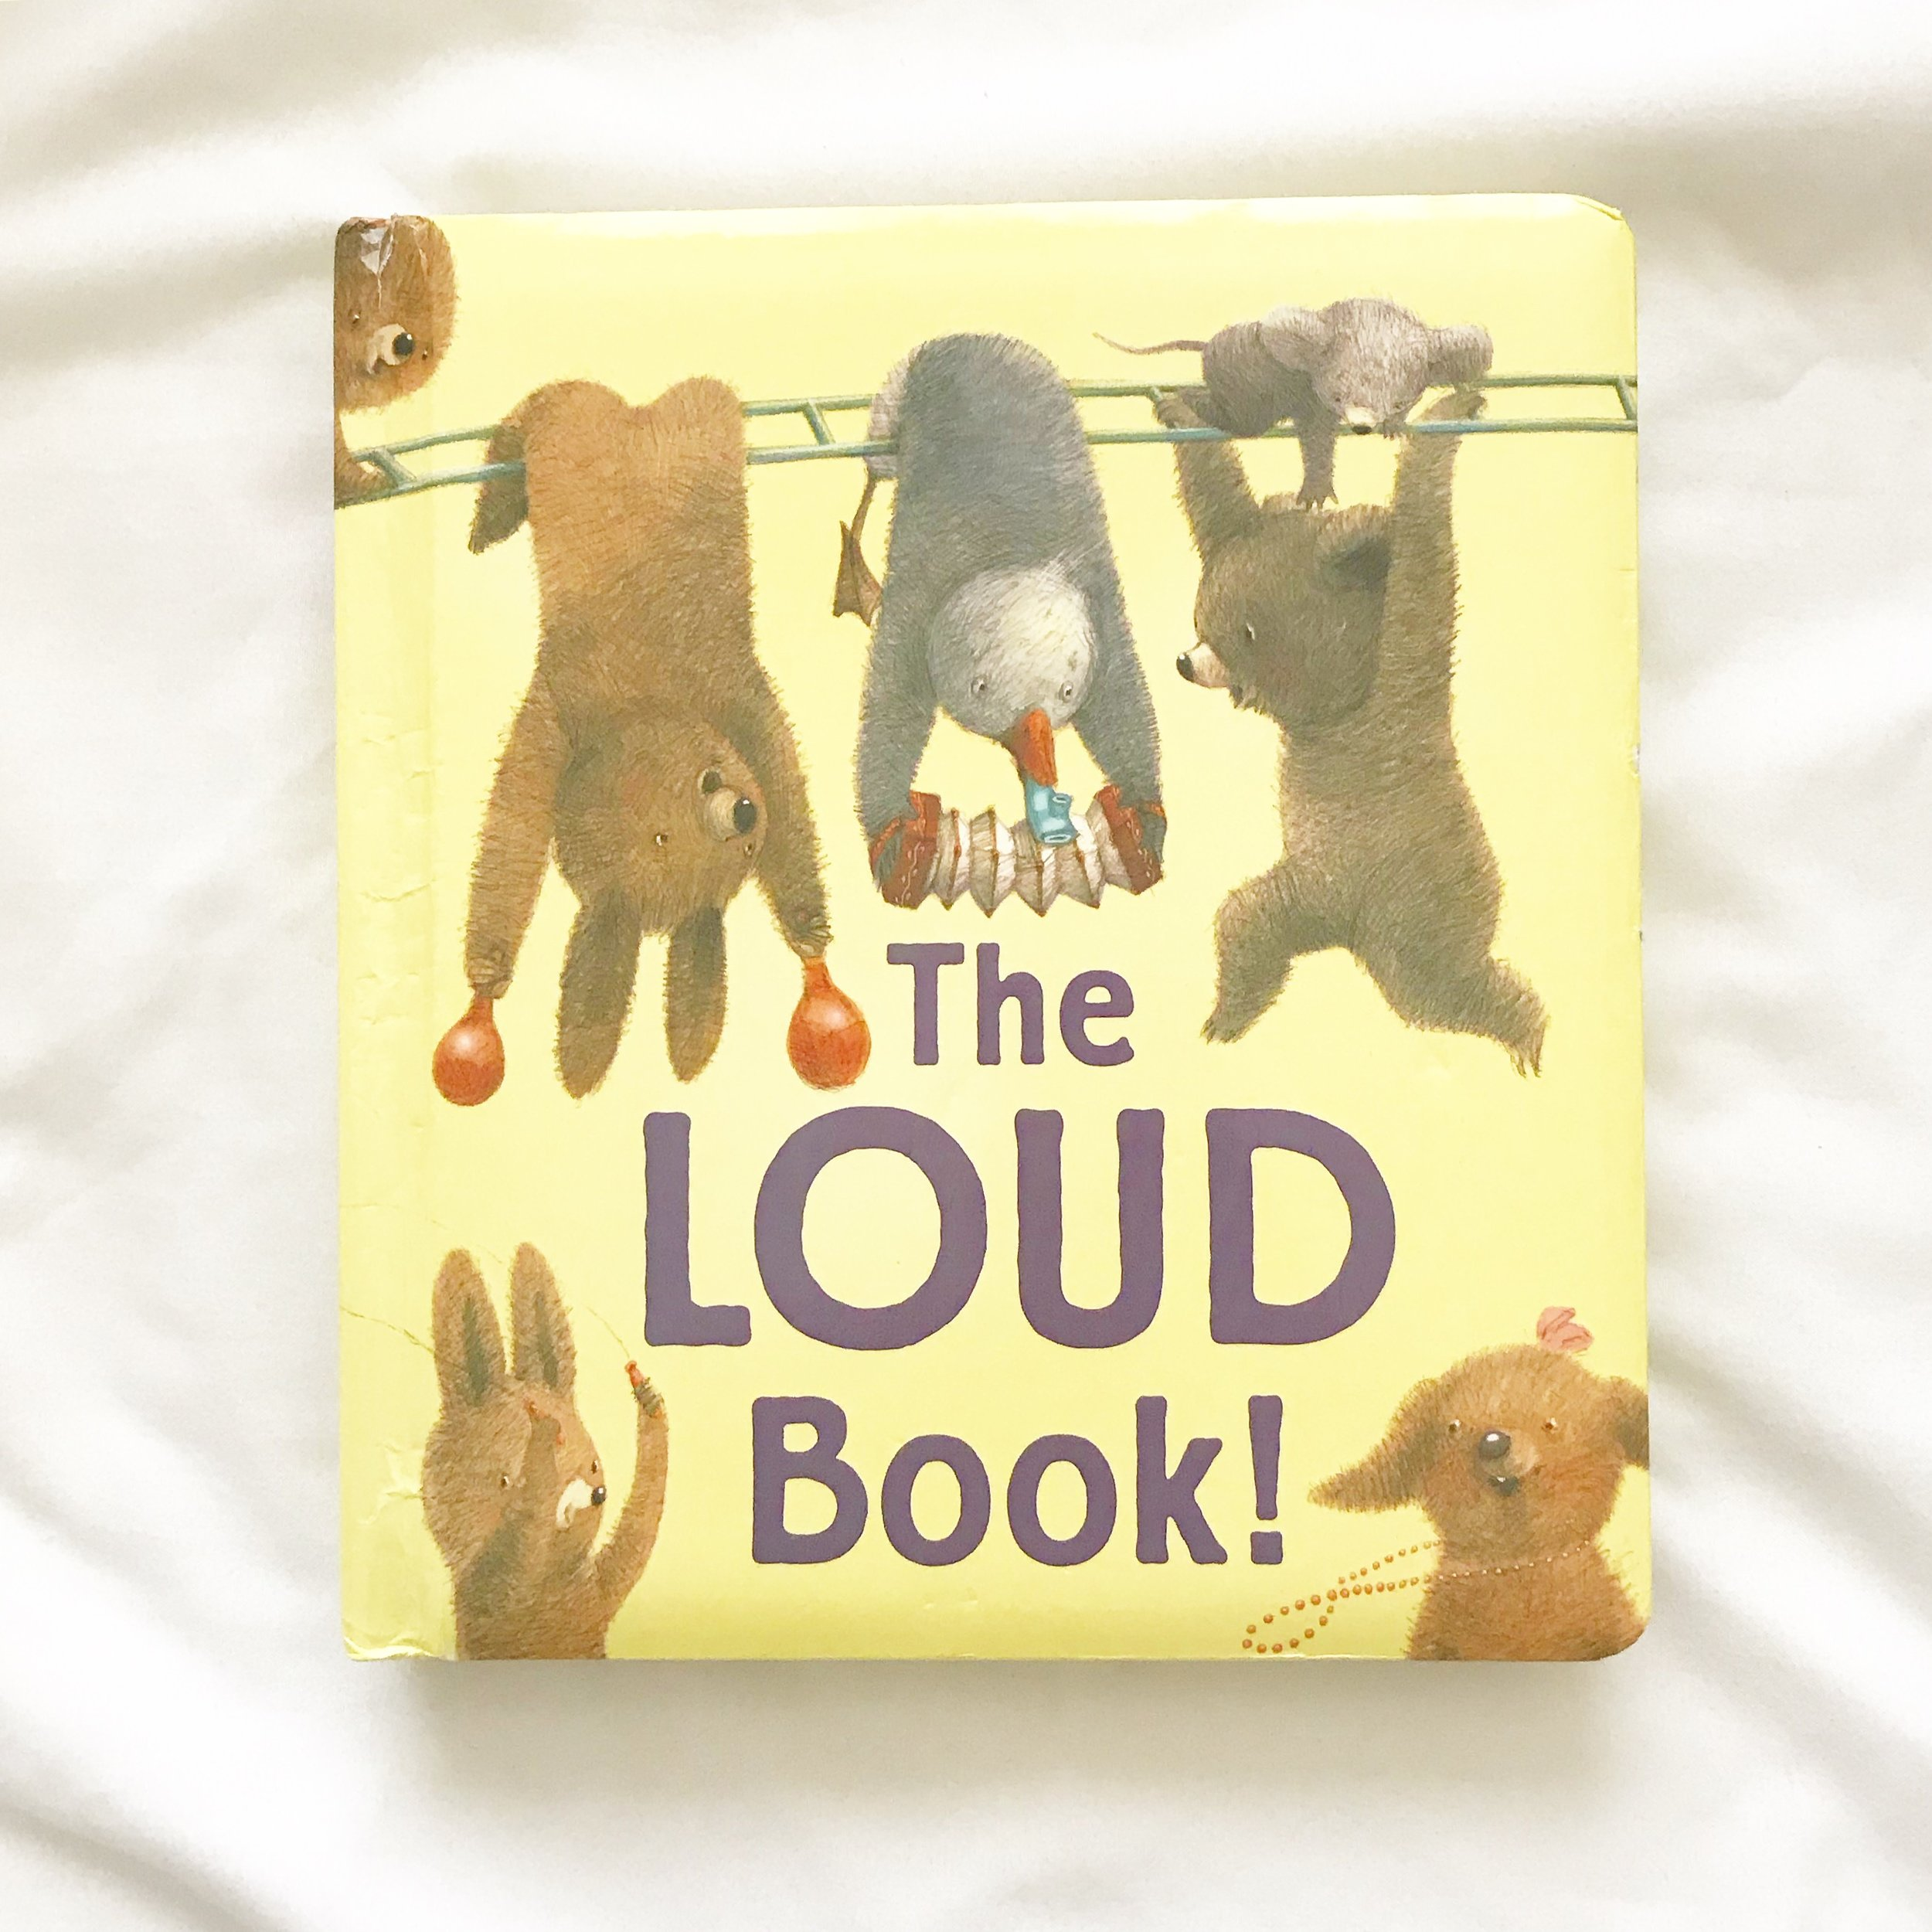 The Loud Book   We love this book and how it talks about good louds, bad loads and the different types of loads.  Fun to open a new discussion with your babe.